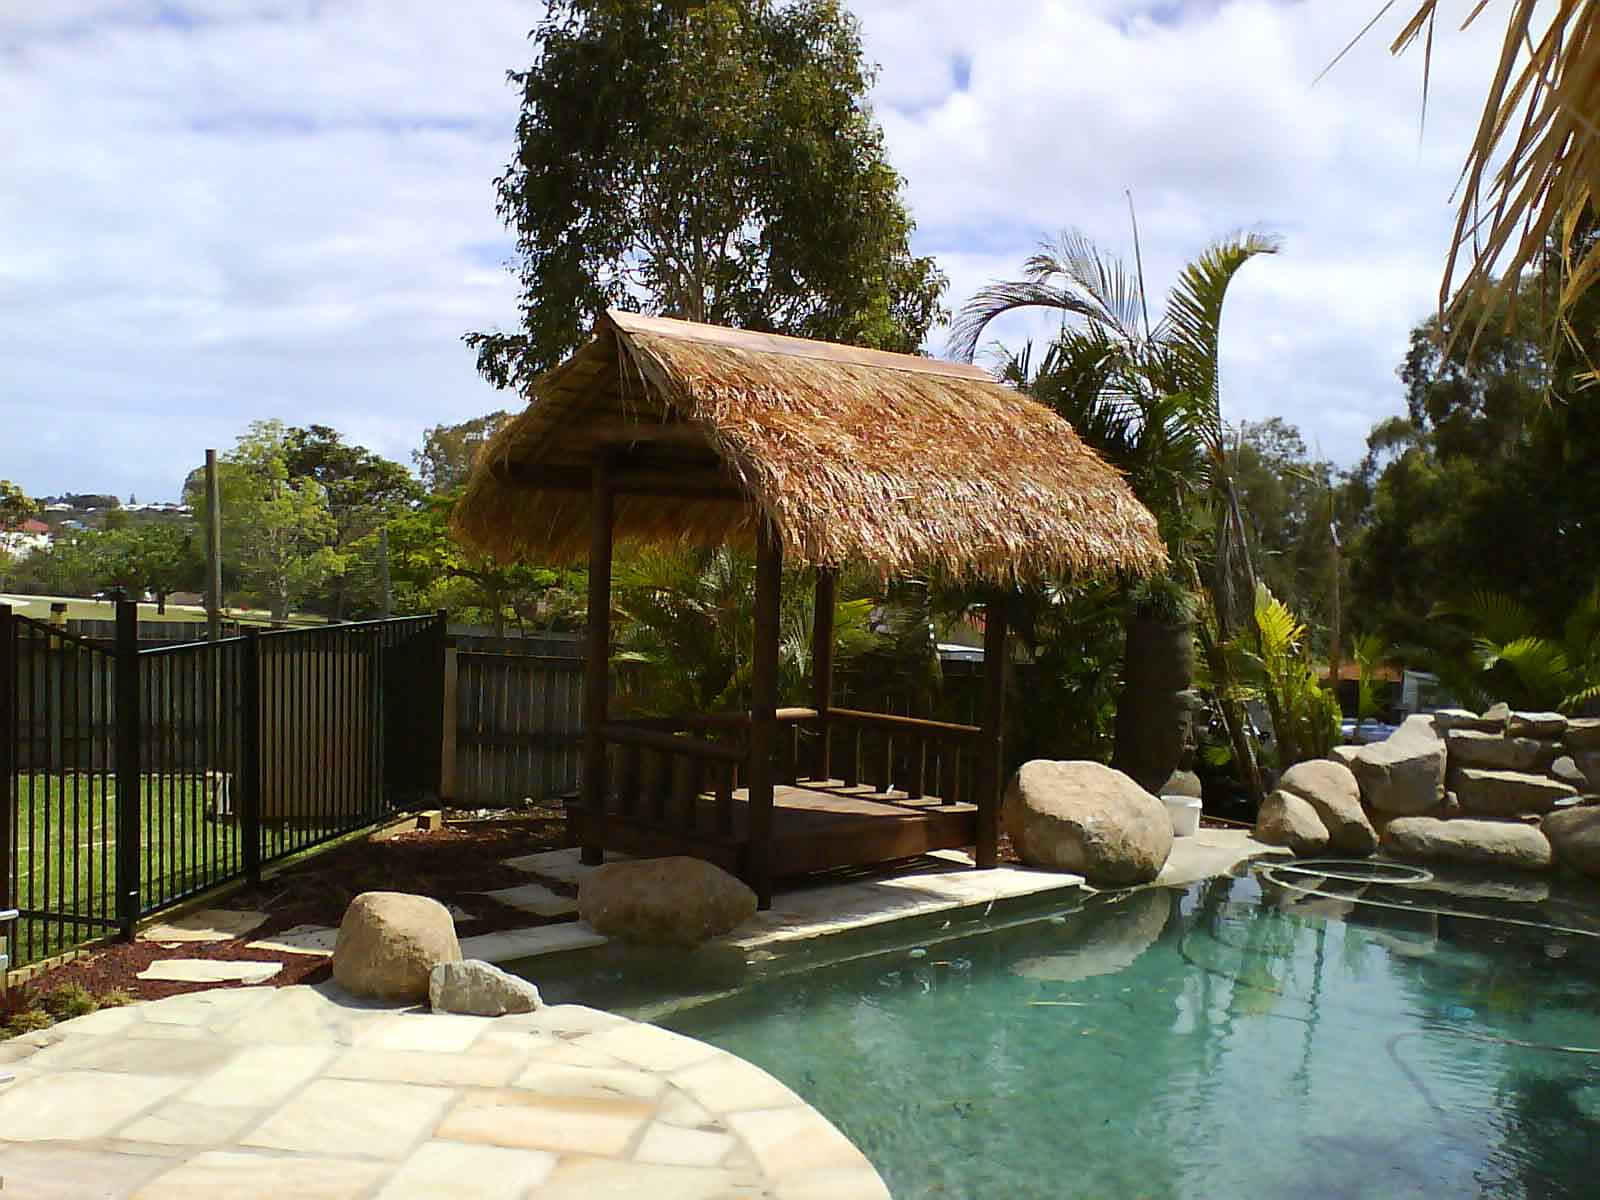 Brisbane Thatch Balinese Hut Gazebo